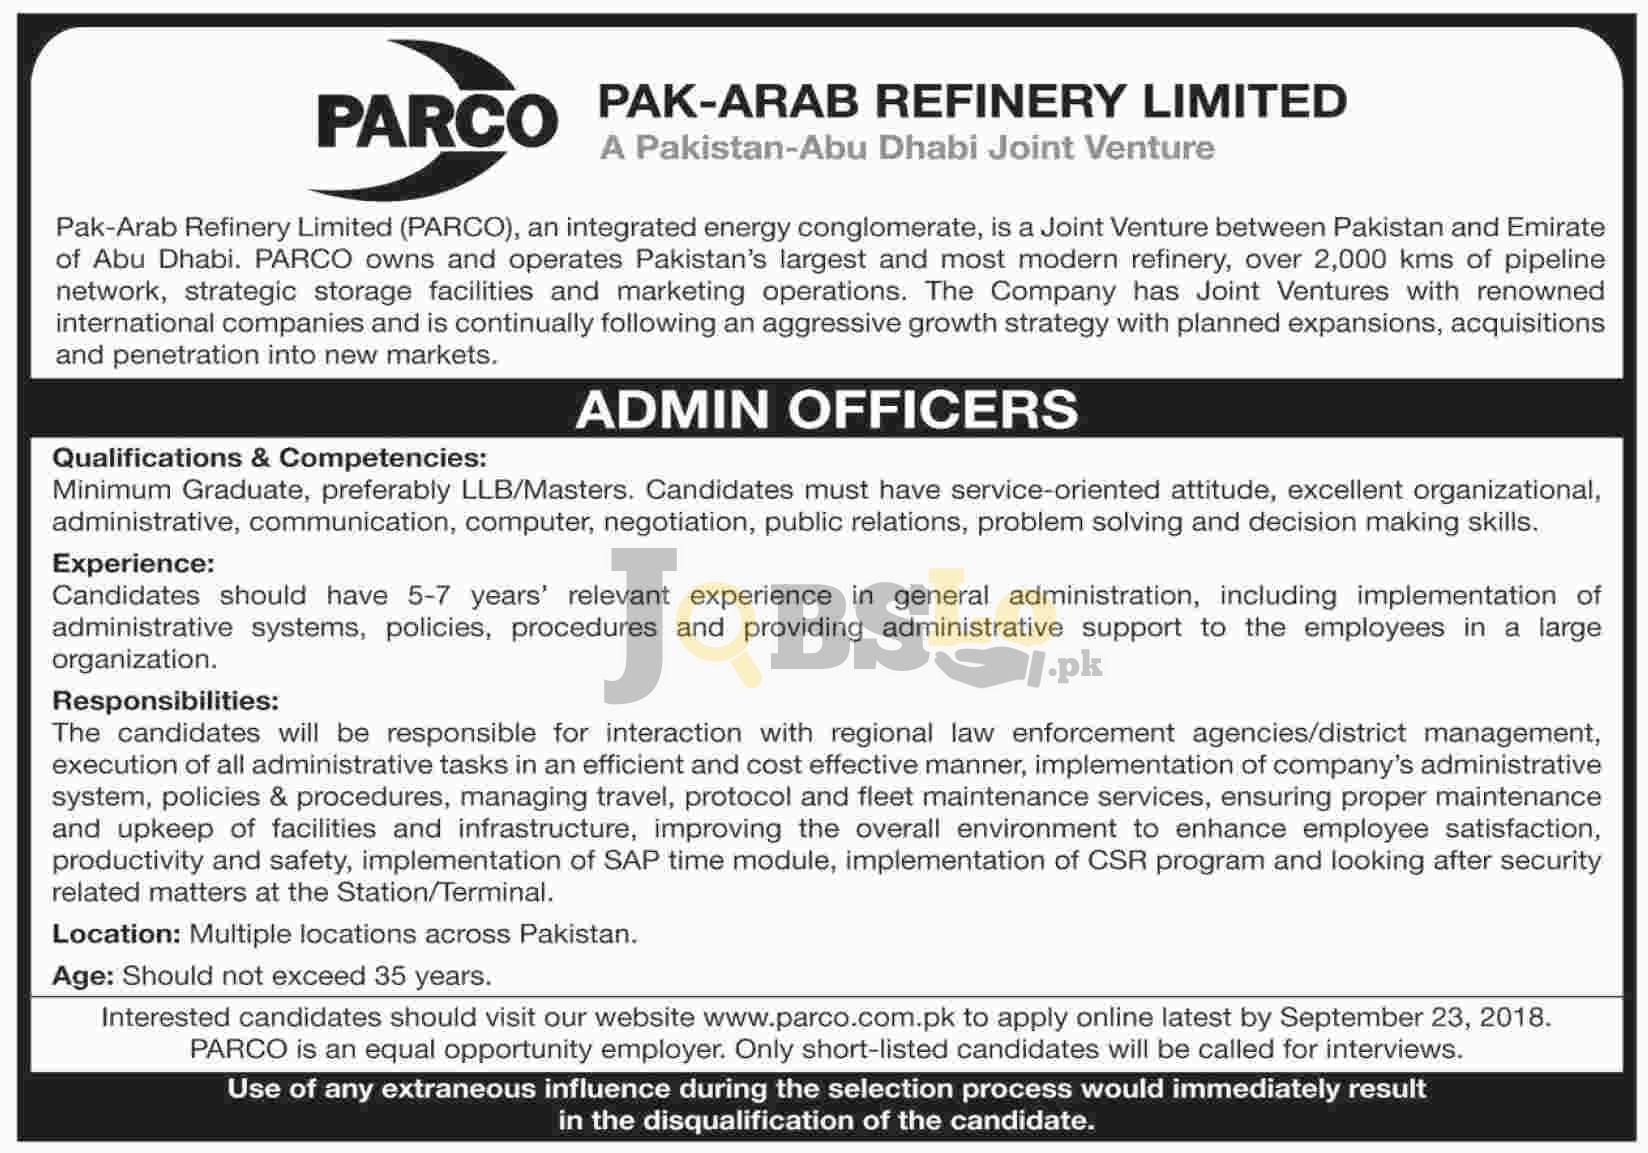 PARCO Jobs 2018 Pak Arab Refinery Limited Apply Online For Admin Officers